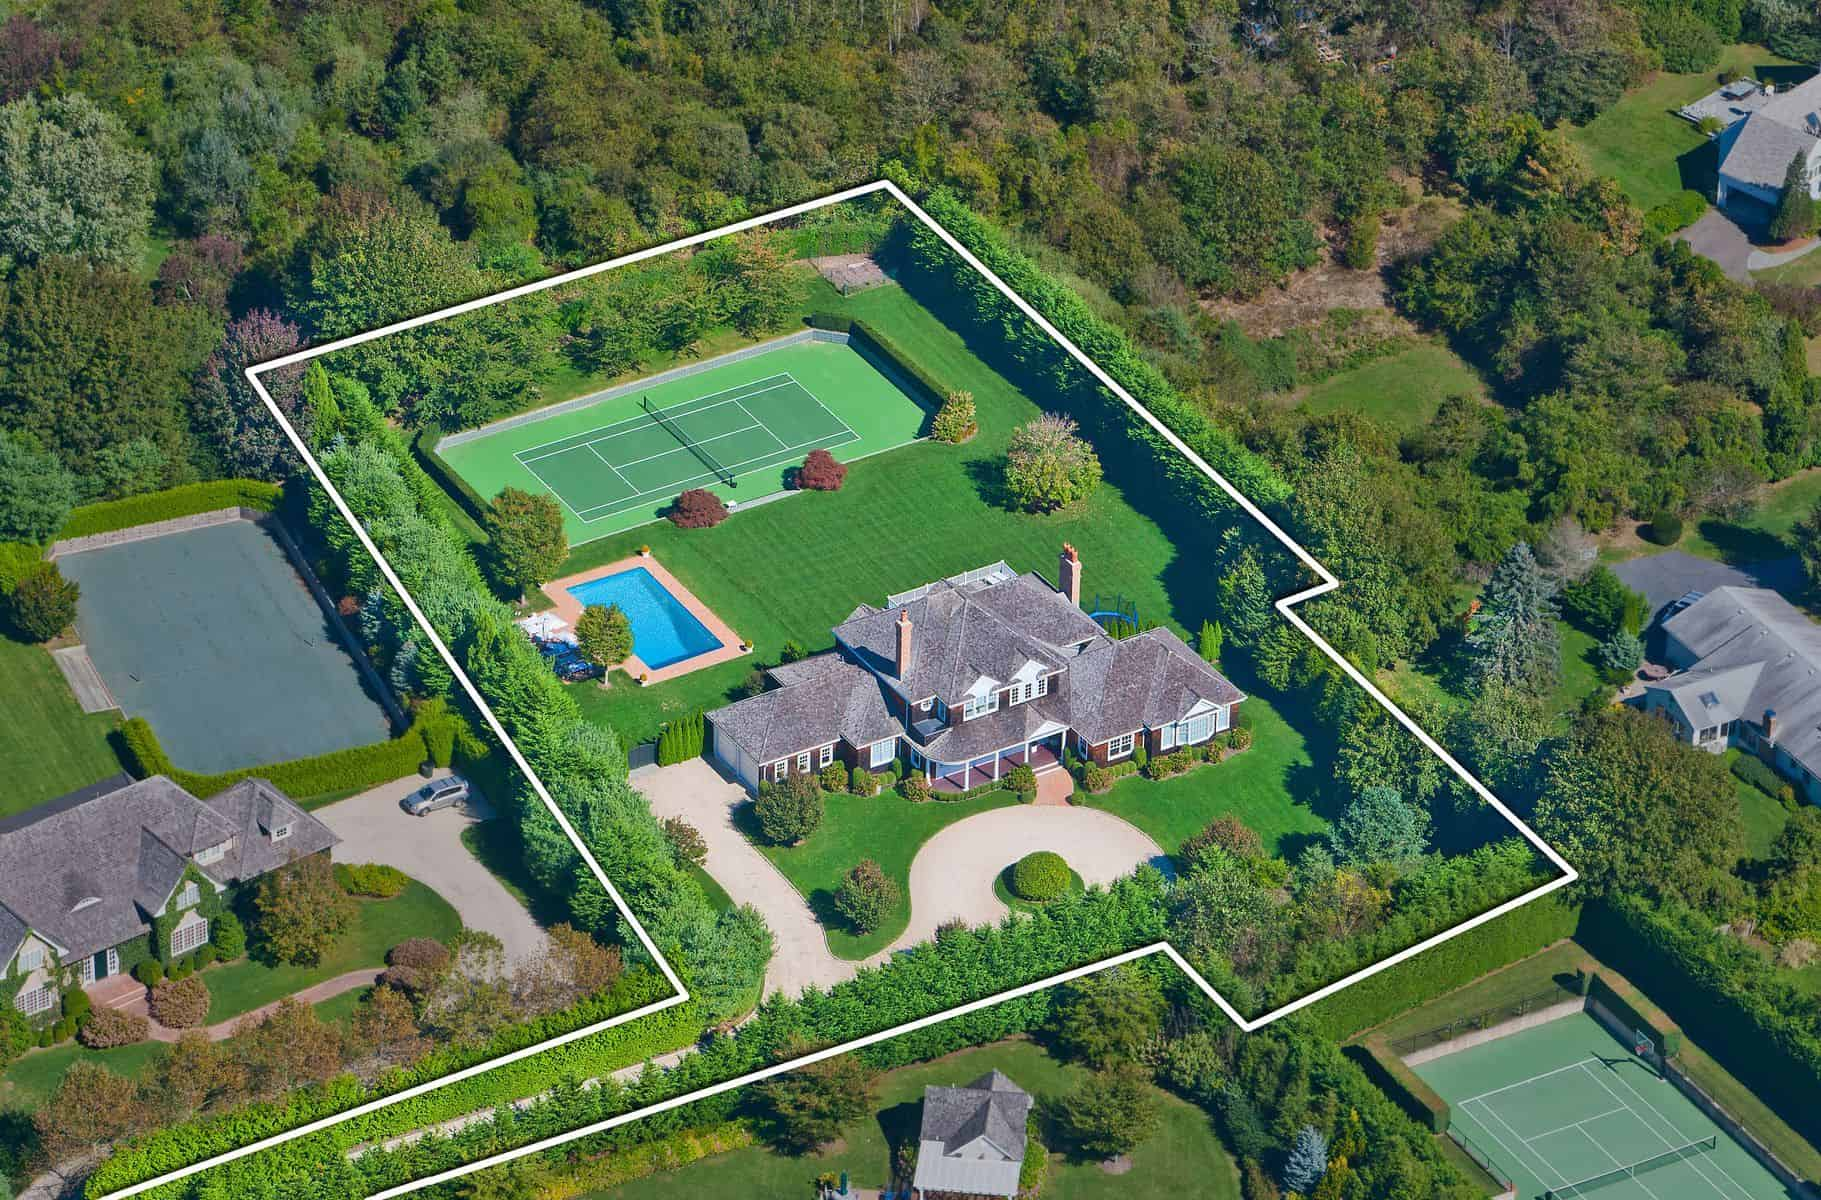 The aerial view of the house showcasing the green and tall trees providing visual protection from neighbors.